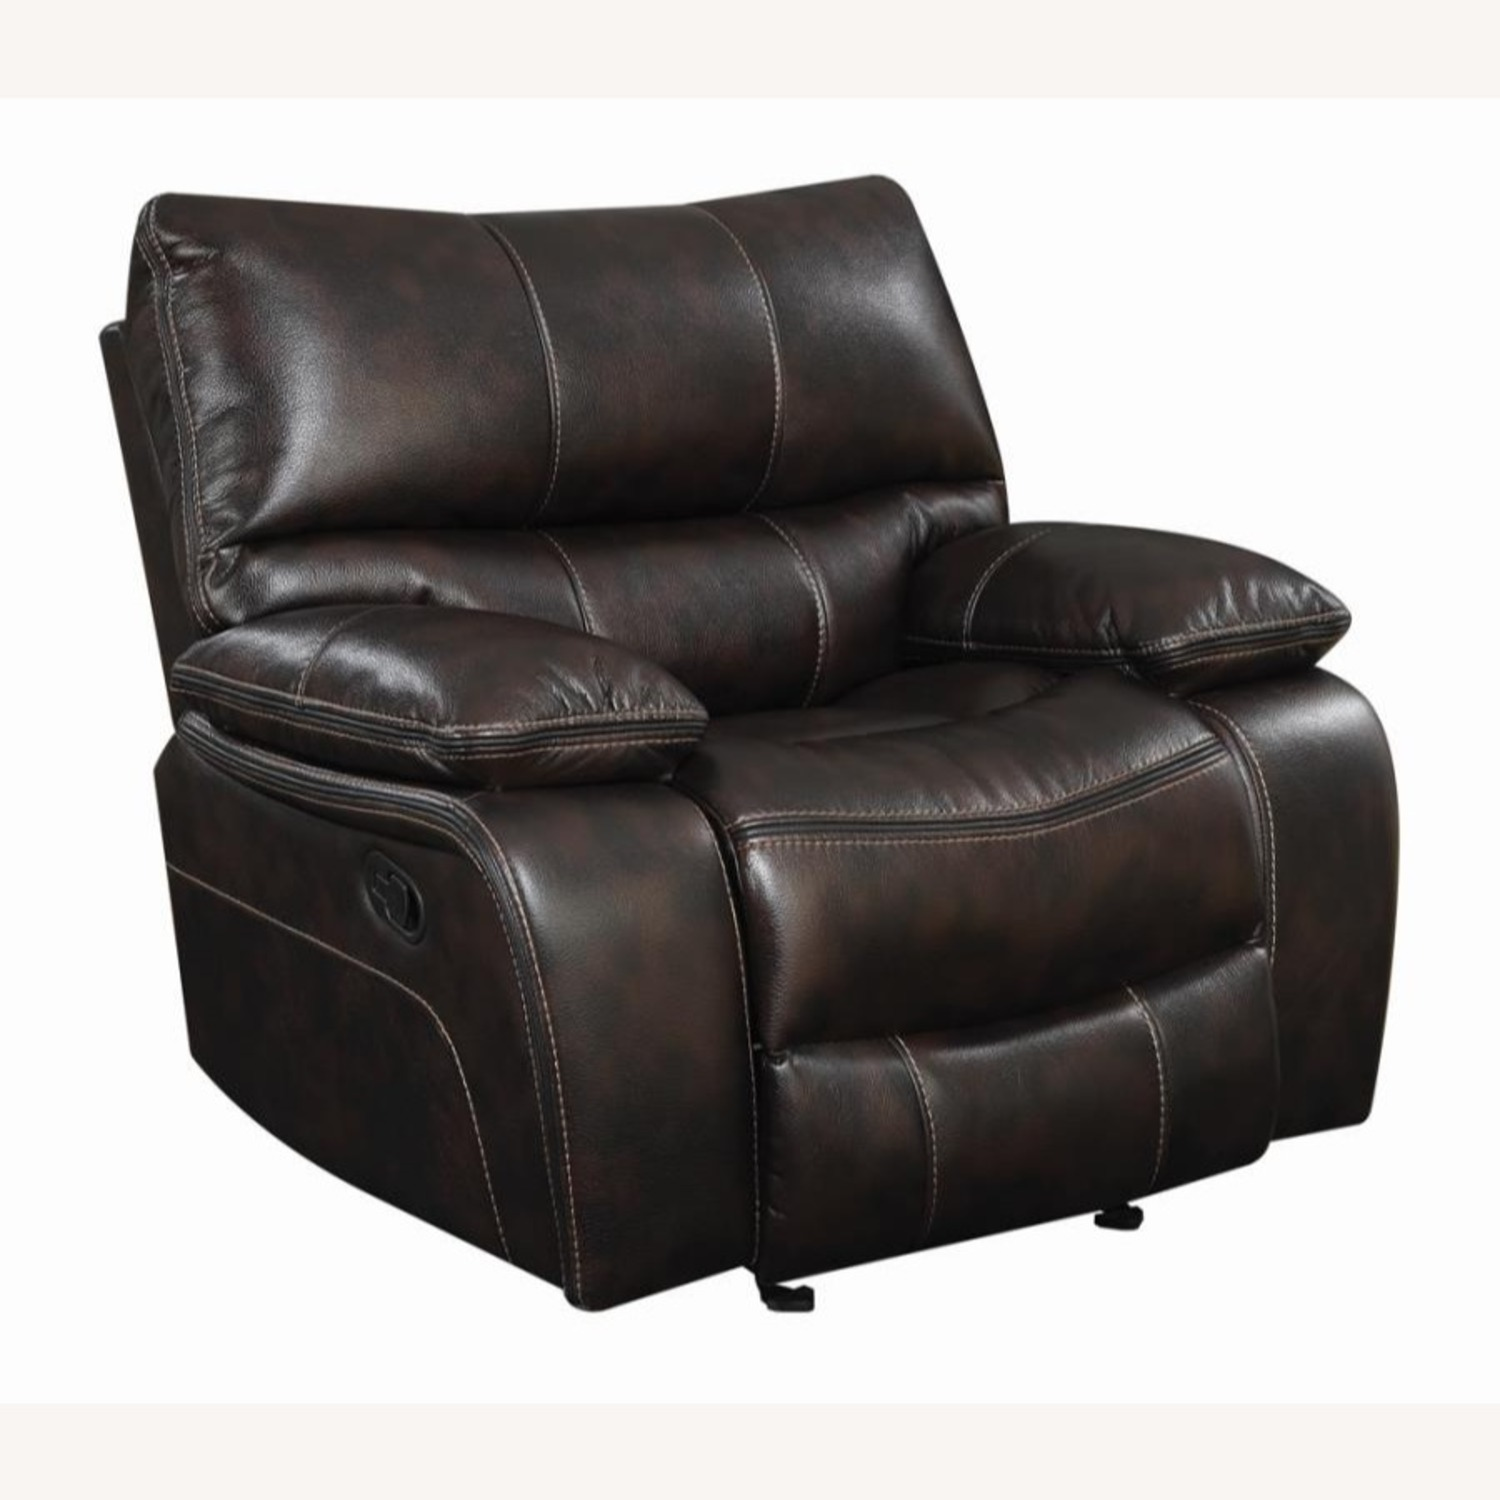 Glider Recliner W/ Scooped Seating In Dark Brown - image-0